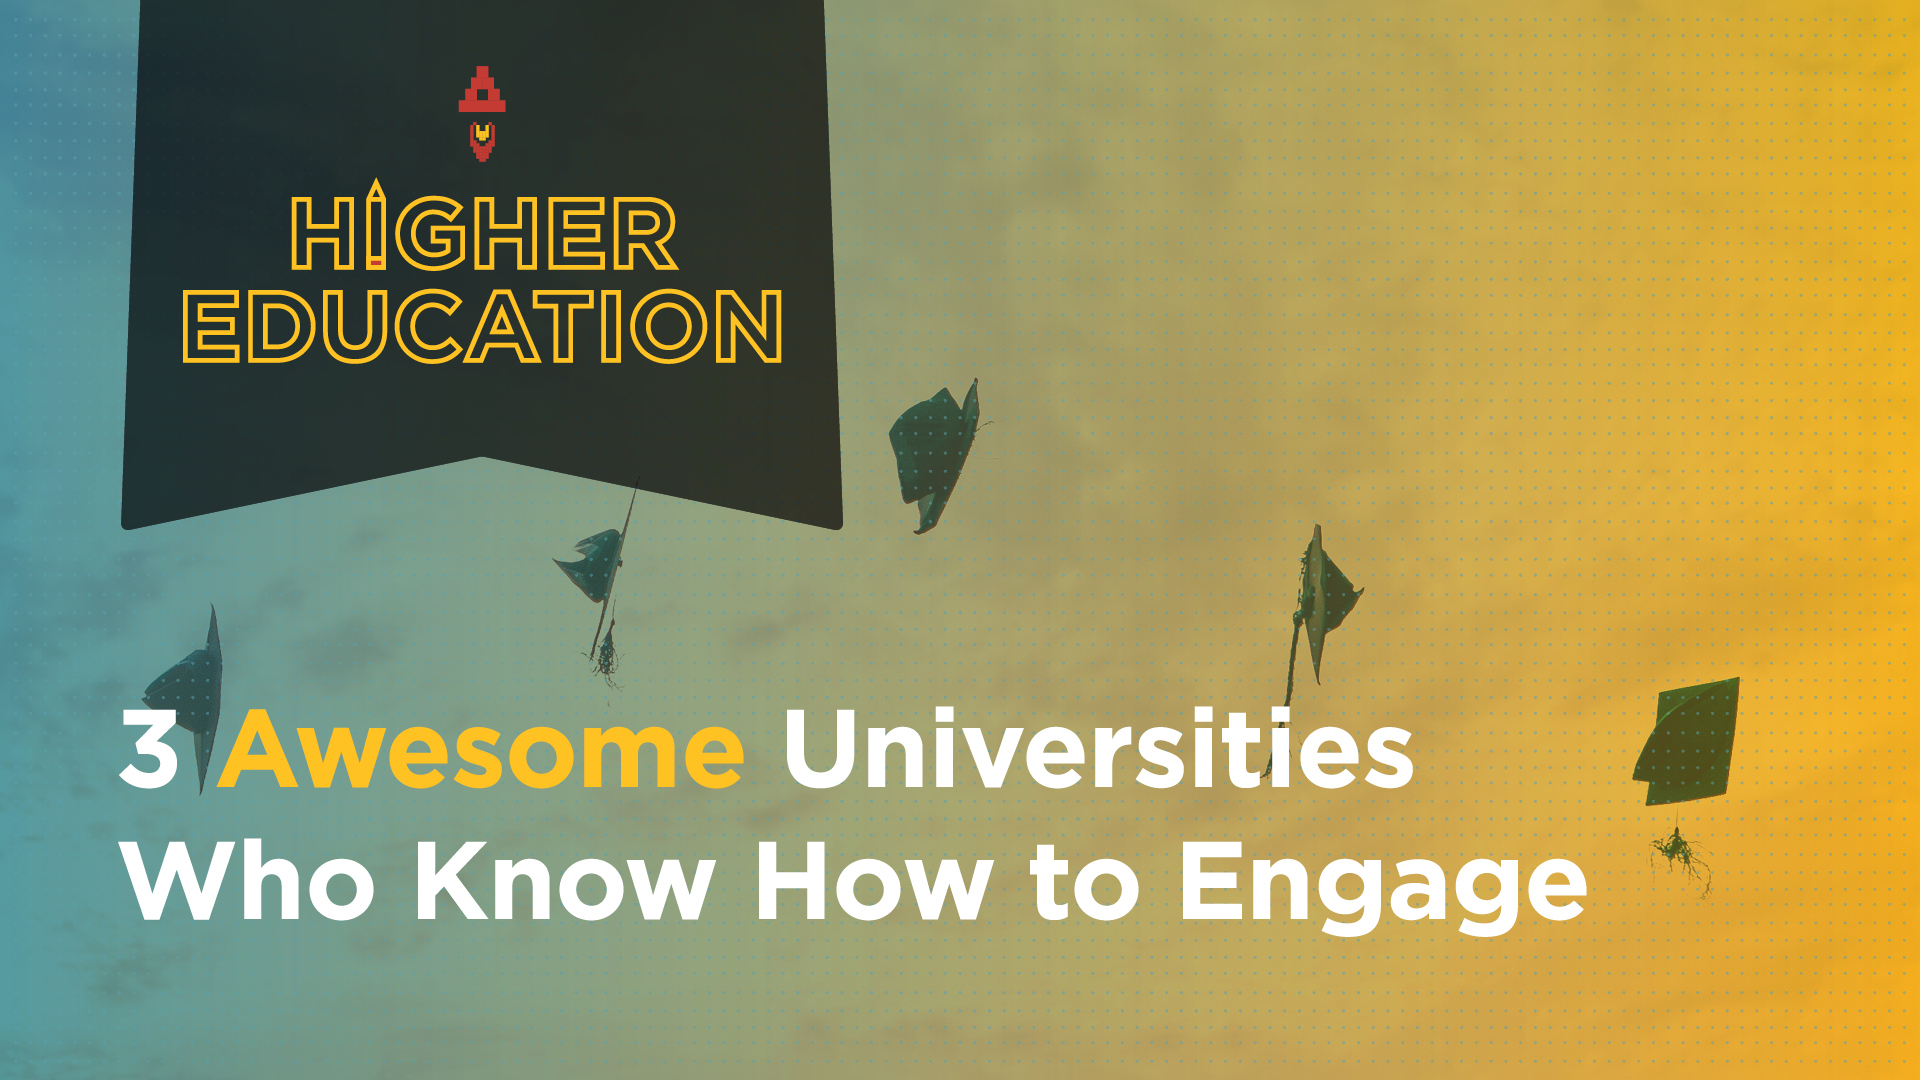 3 AWESOME Universities Who Know How to Engage Online Featured Image